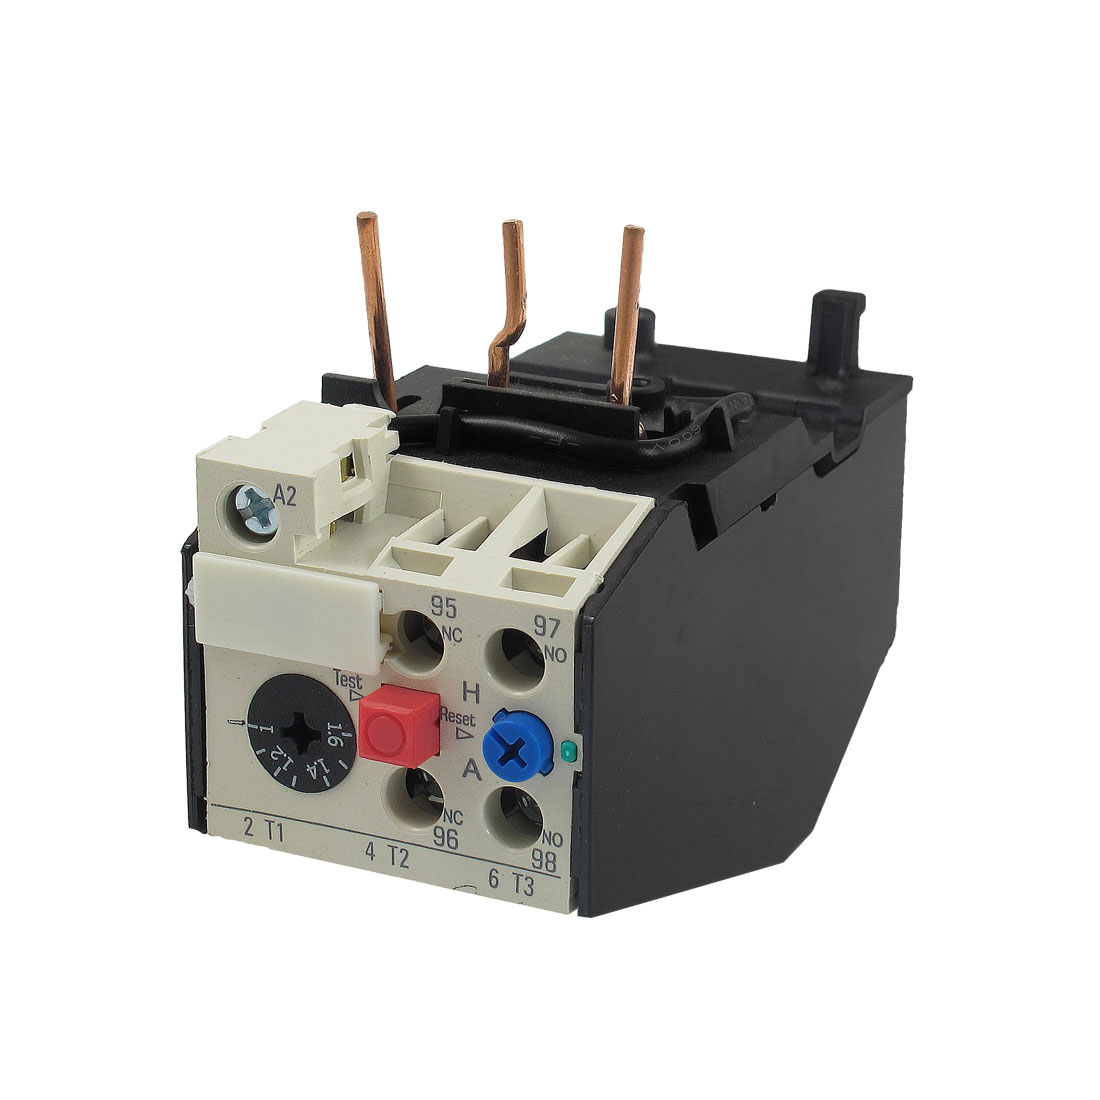 JRS2-12.5 1.6A 3 Pole 1-1.6A Current Range Motor Protective Thermal Overload Relays